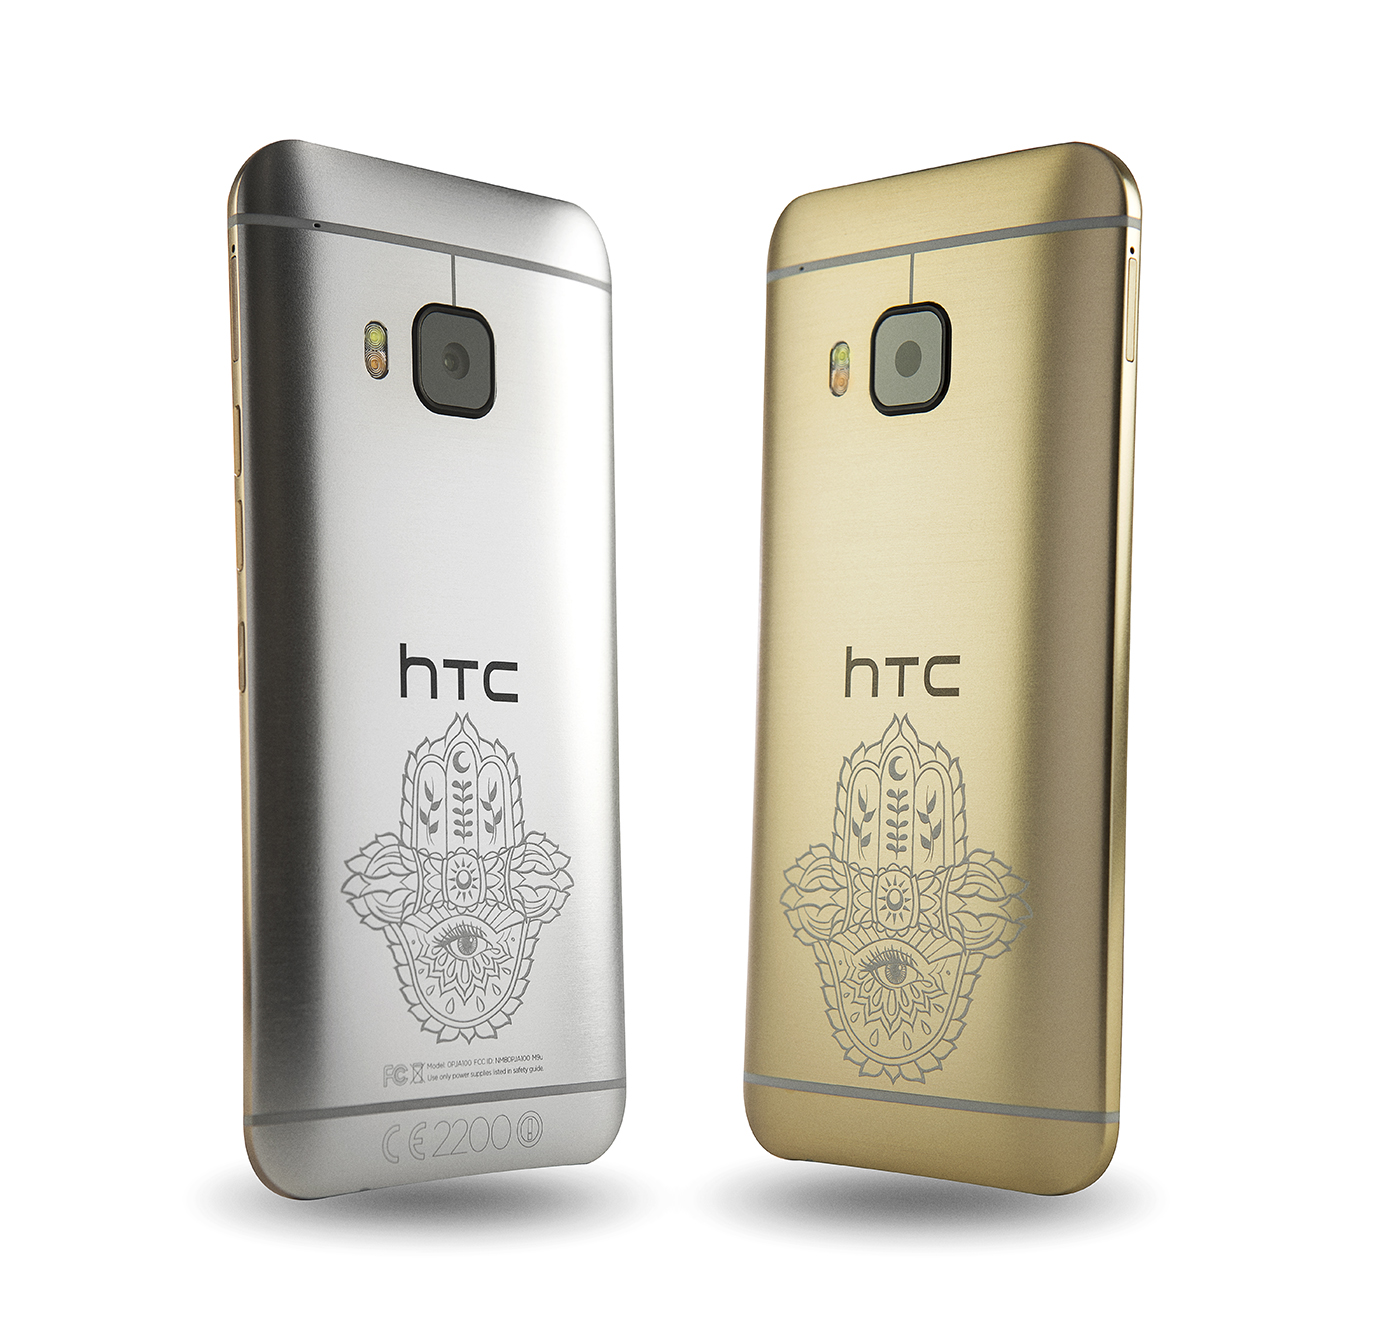 HTC ONE M9 INK GOLD AND SILVER